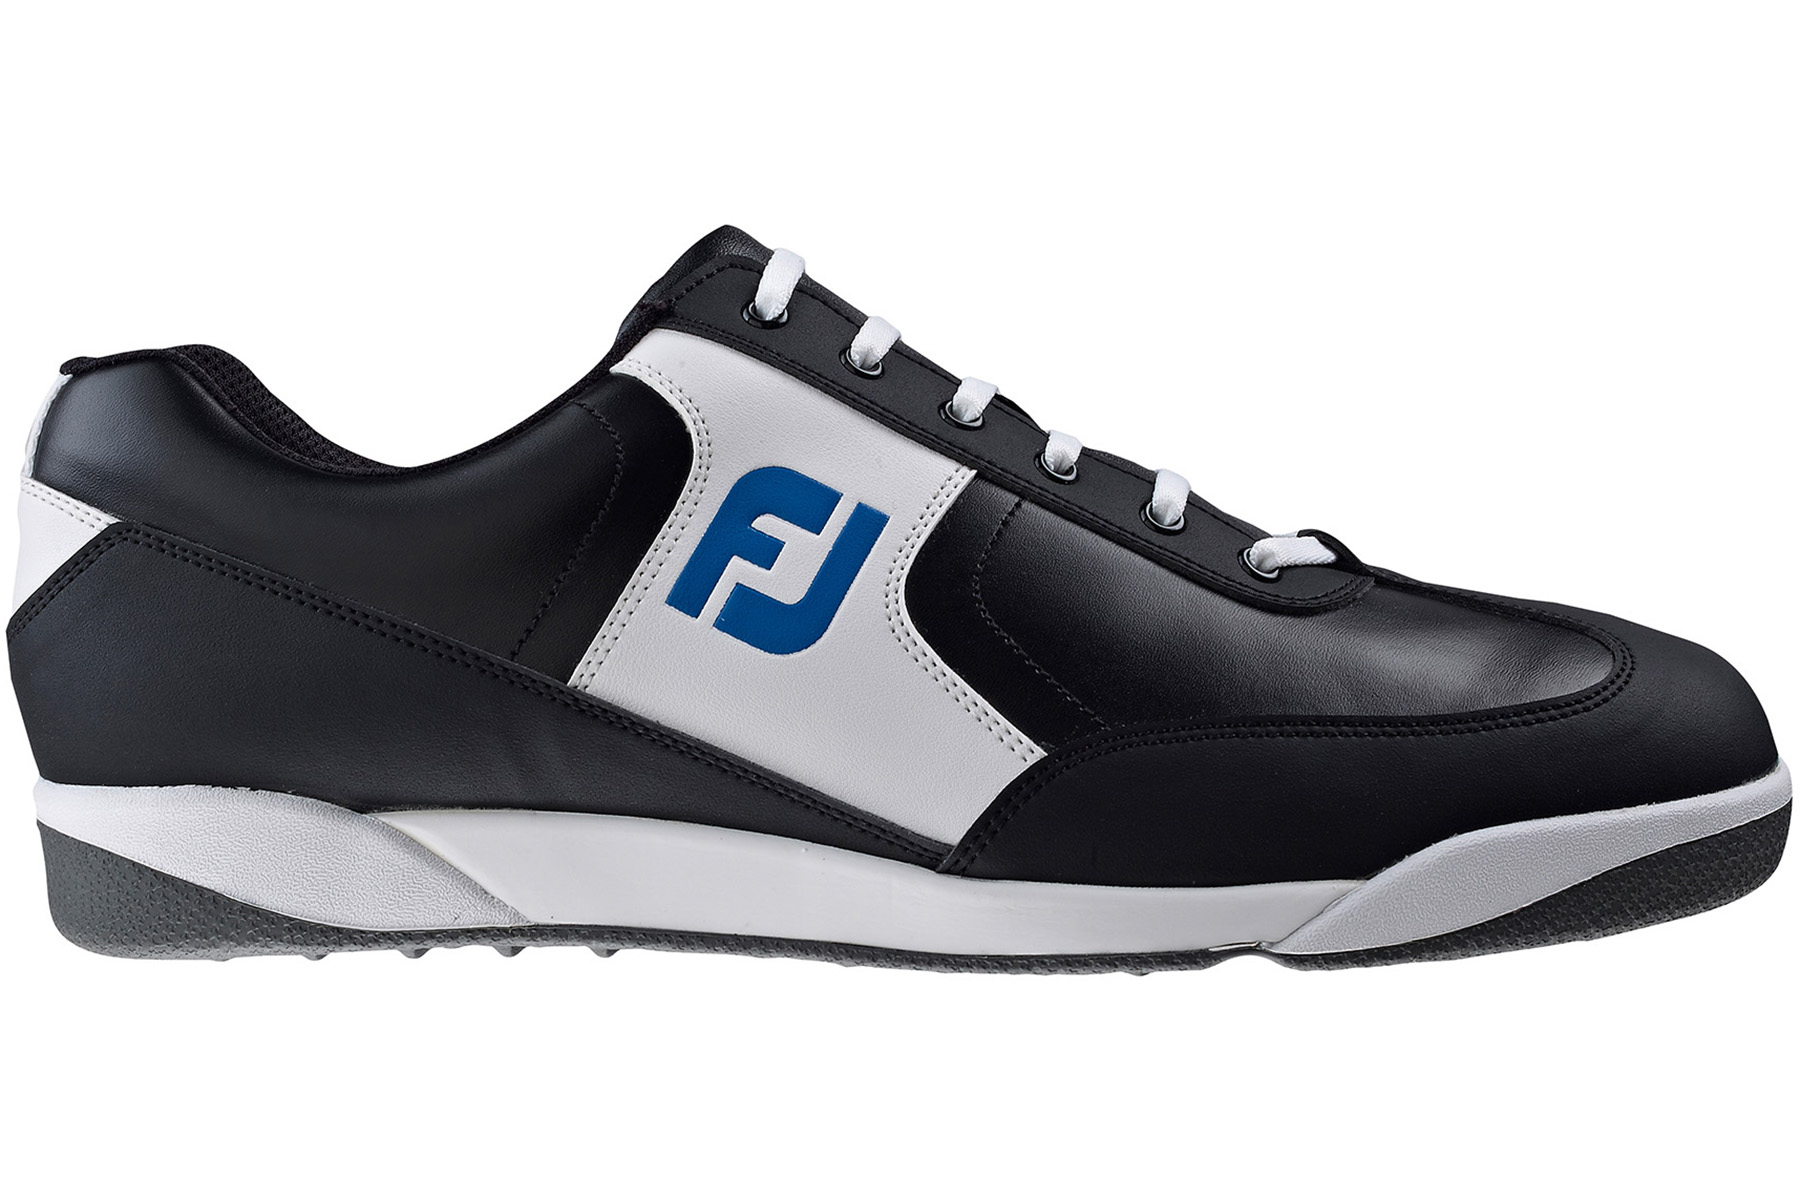 Footjoy Golf Shoes Online Shopping